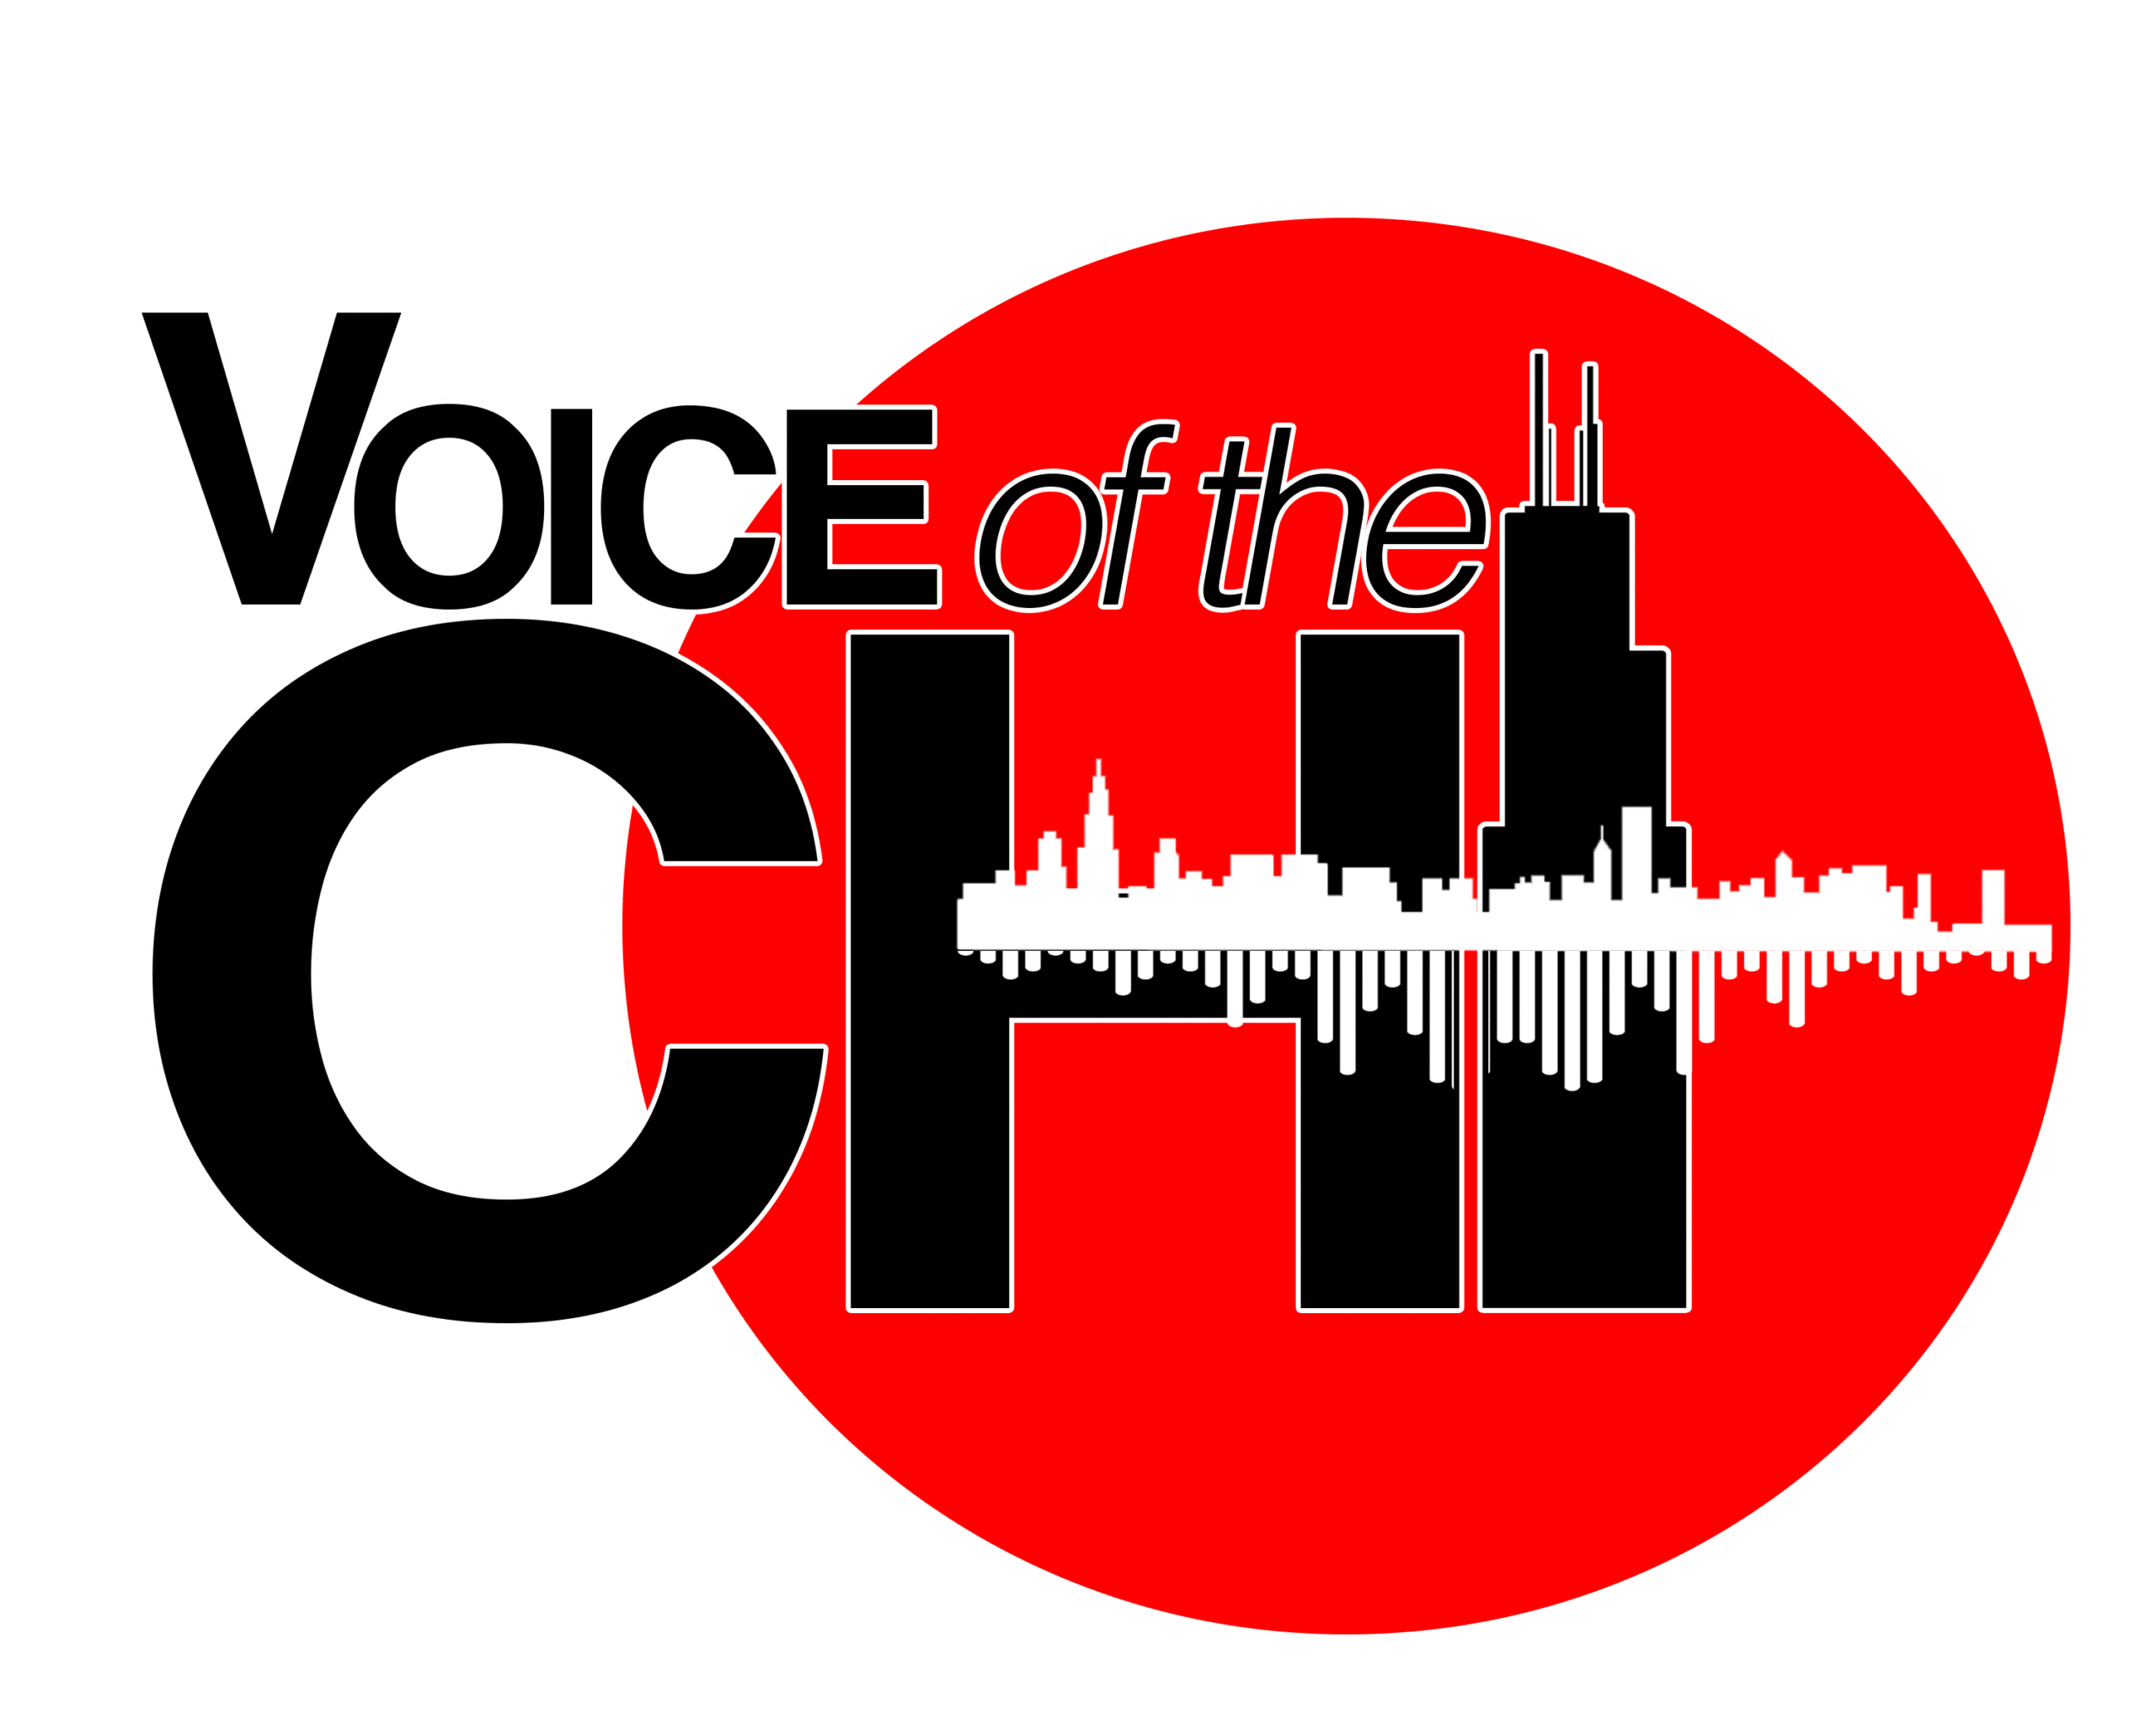 Voice of the Chi